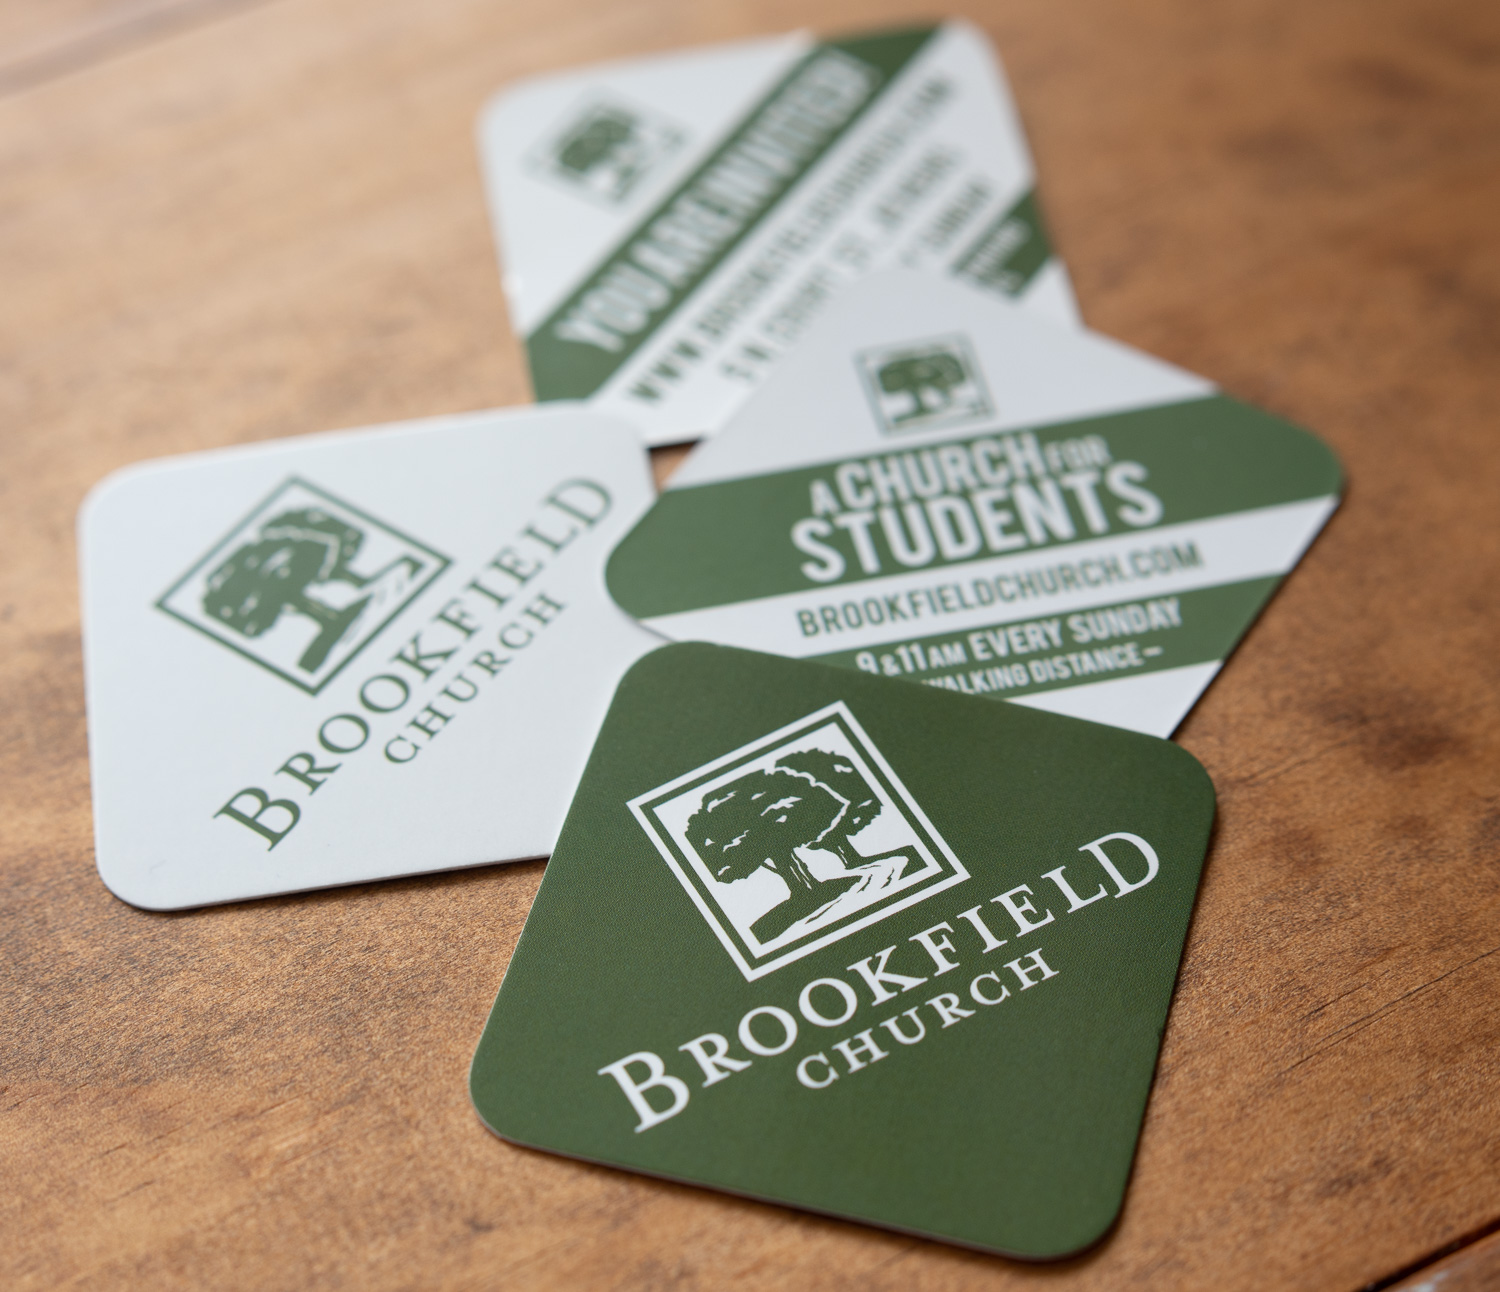 Invitation cards for Brookfield Church in Athens, Ohio.